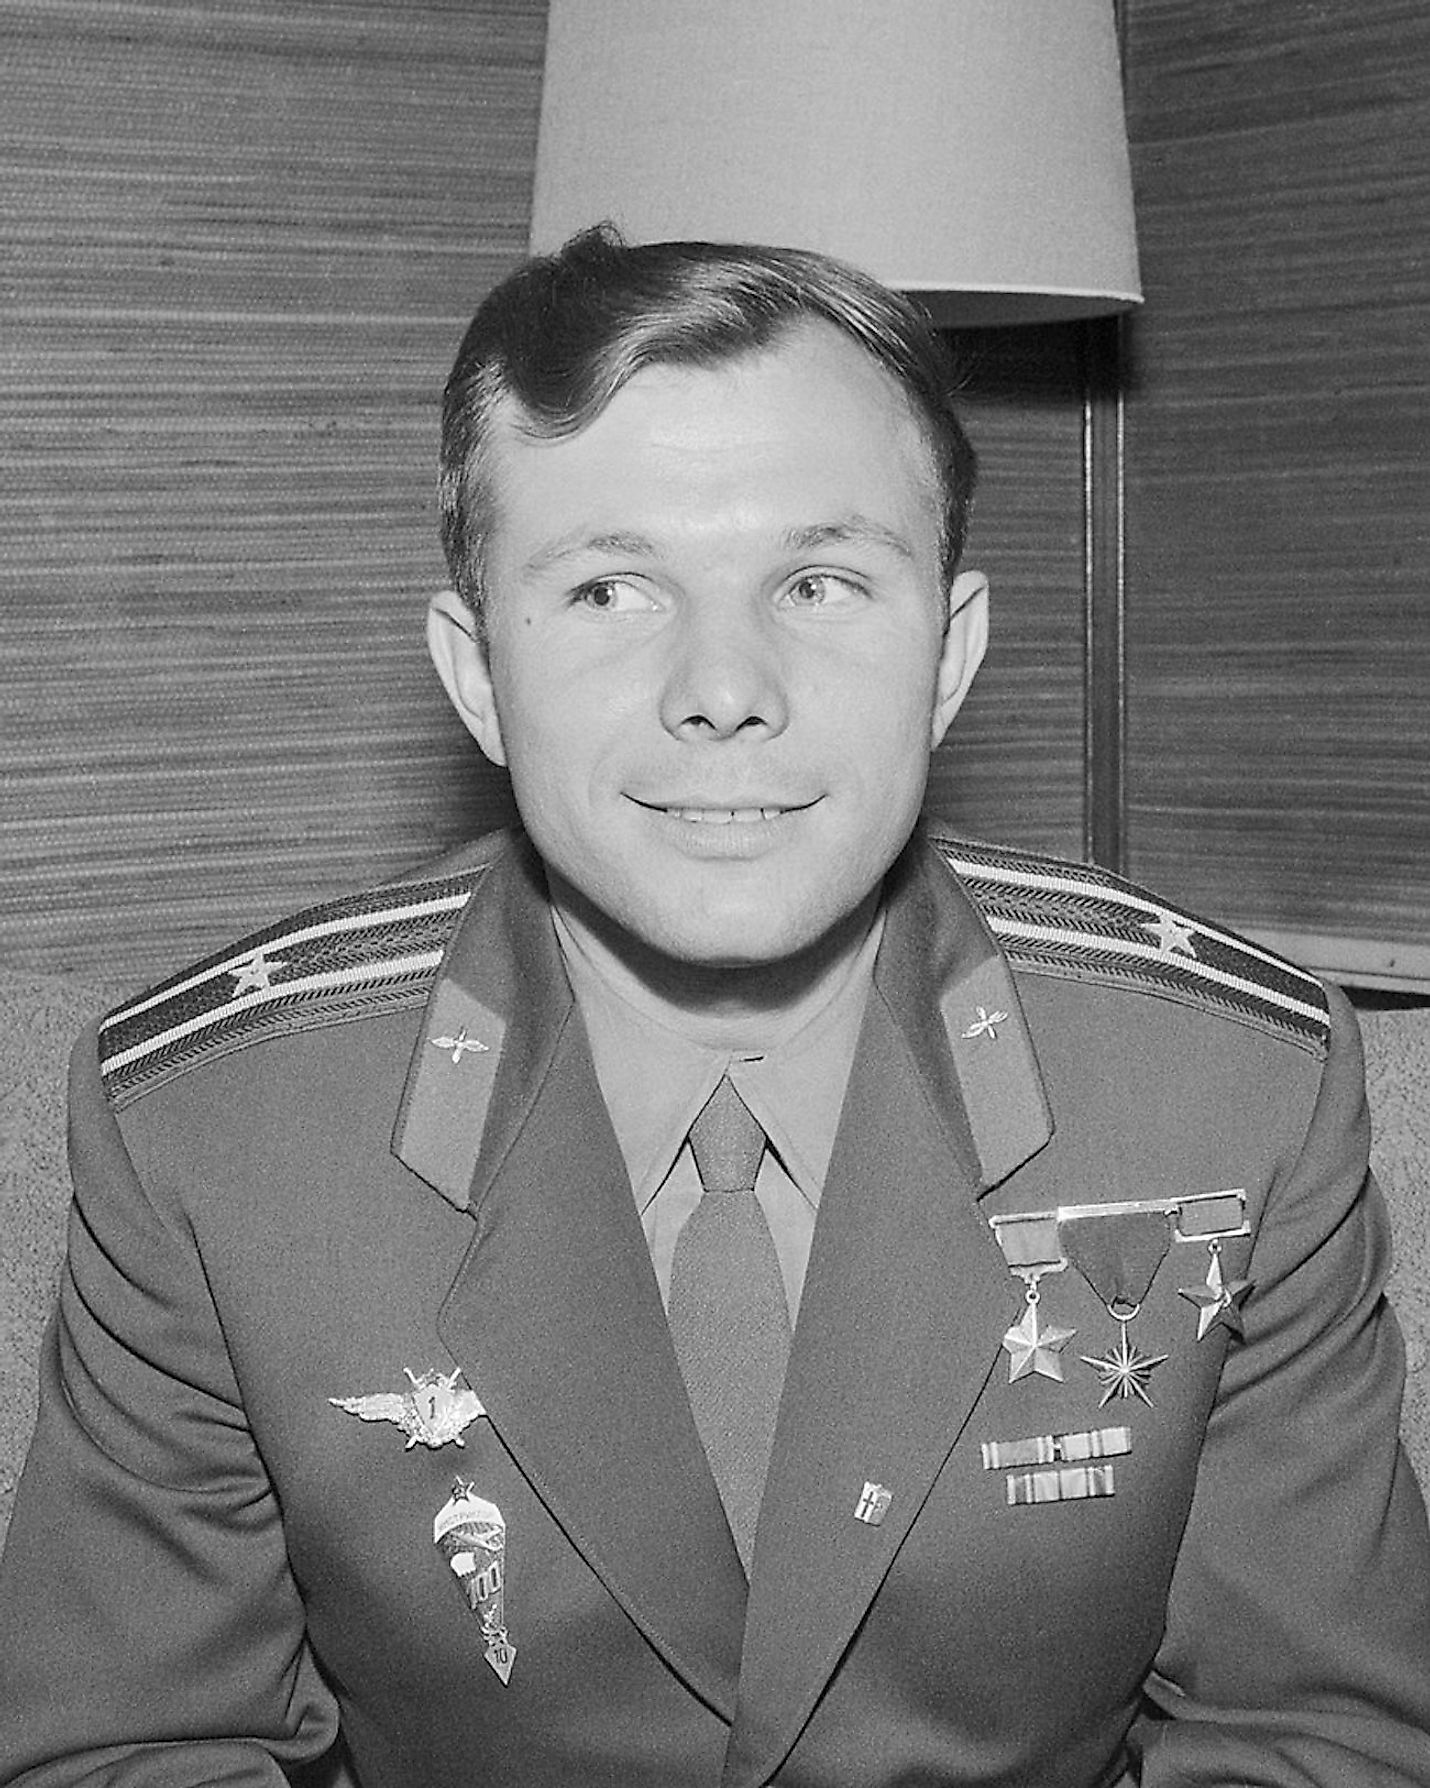 Photograph of the Soviet cosmonaut Yuri Gagarin at a press conference during his visit to Finland.